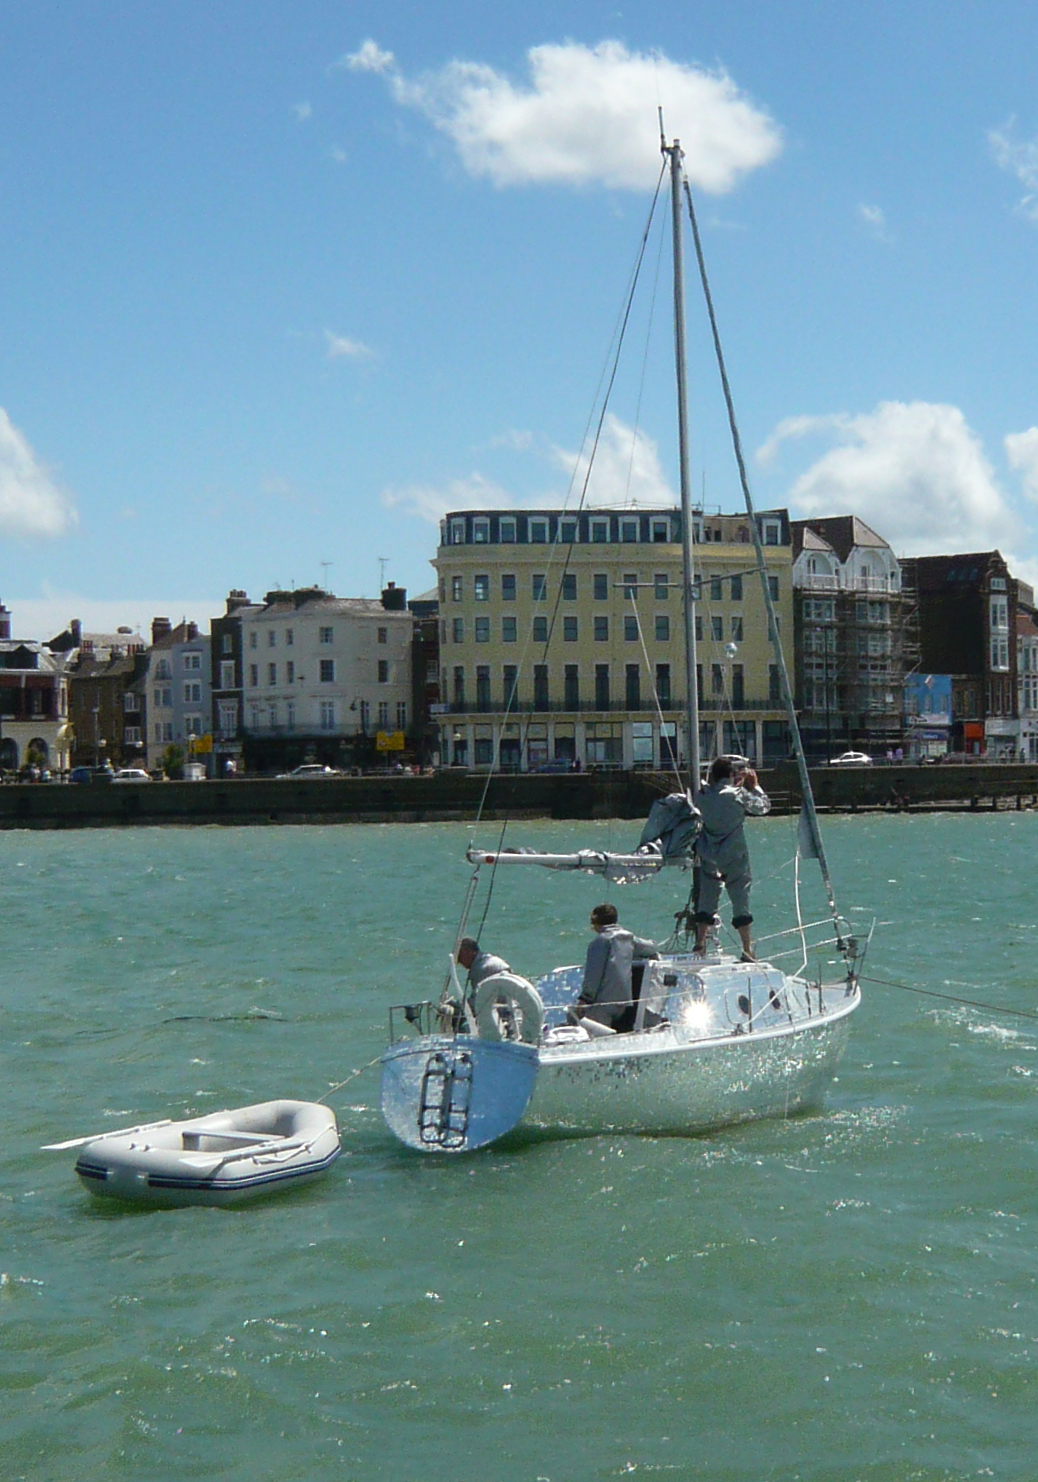 Event in Margate Harbour